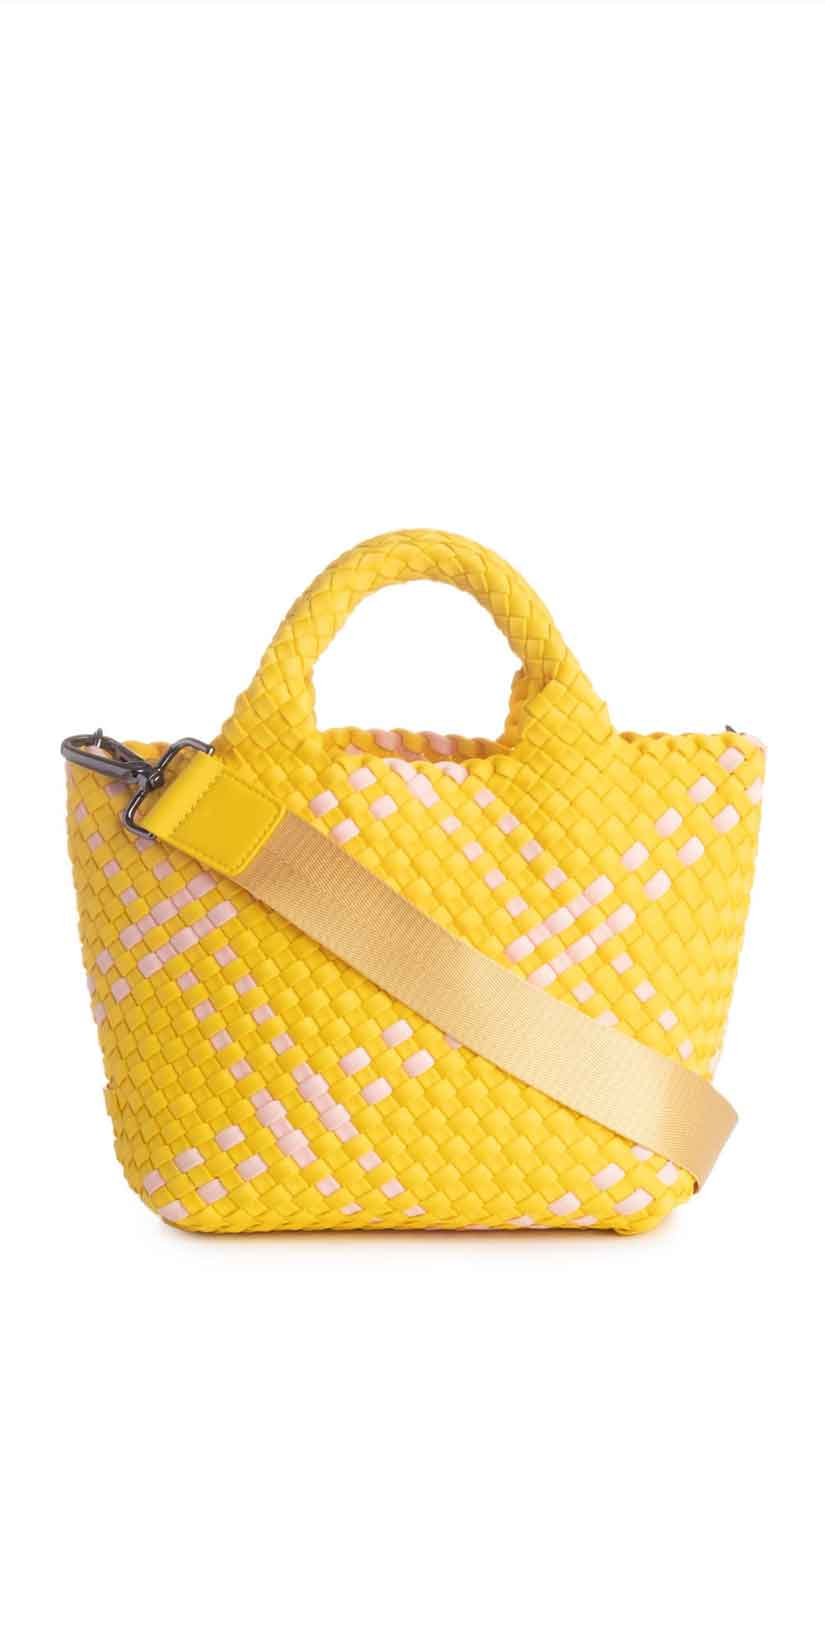 Deux Lux St. Barths Mini Tote in Limoncello: